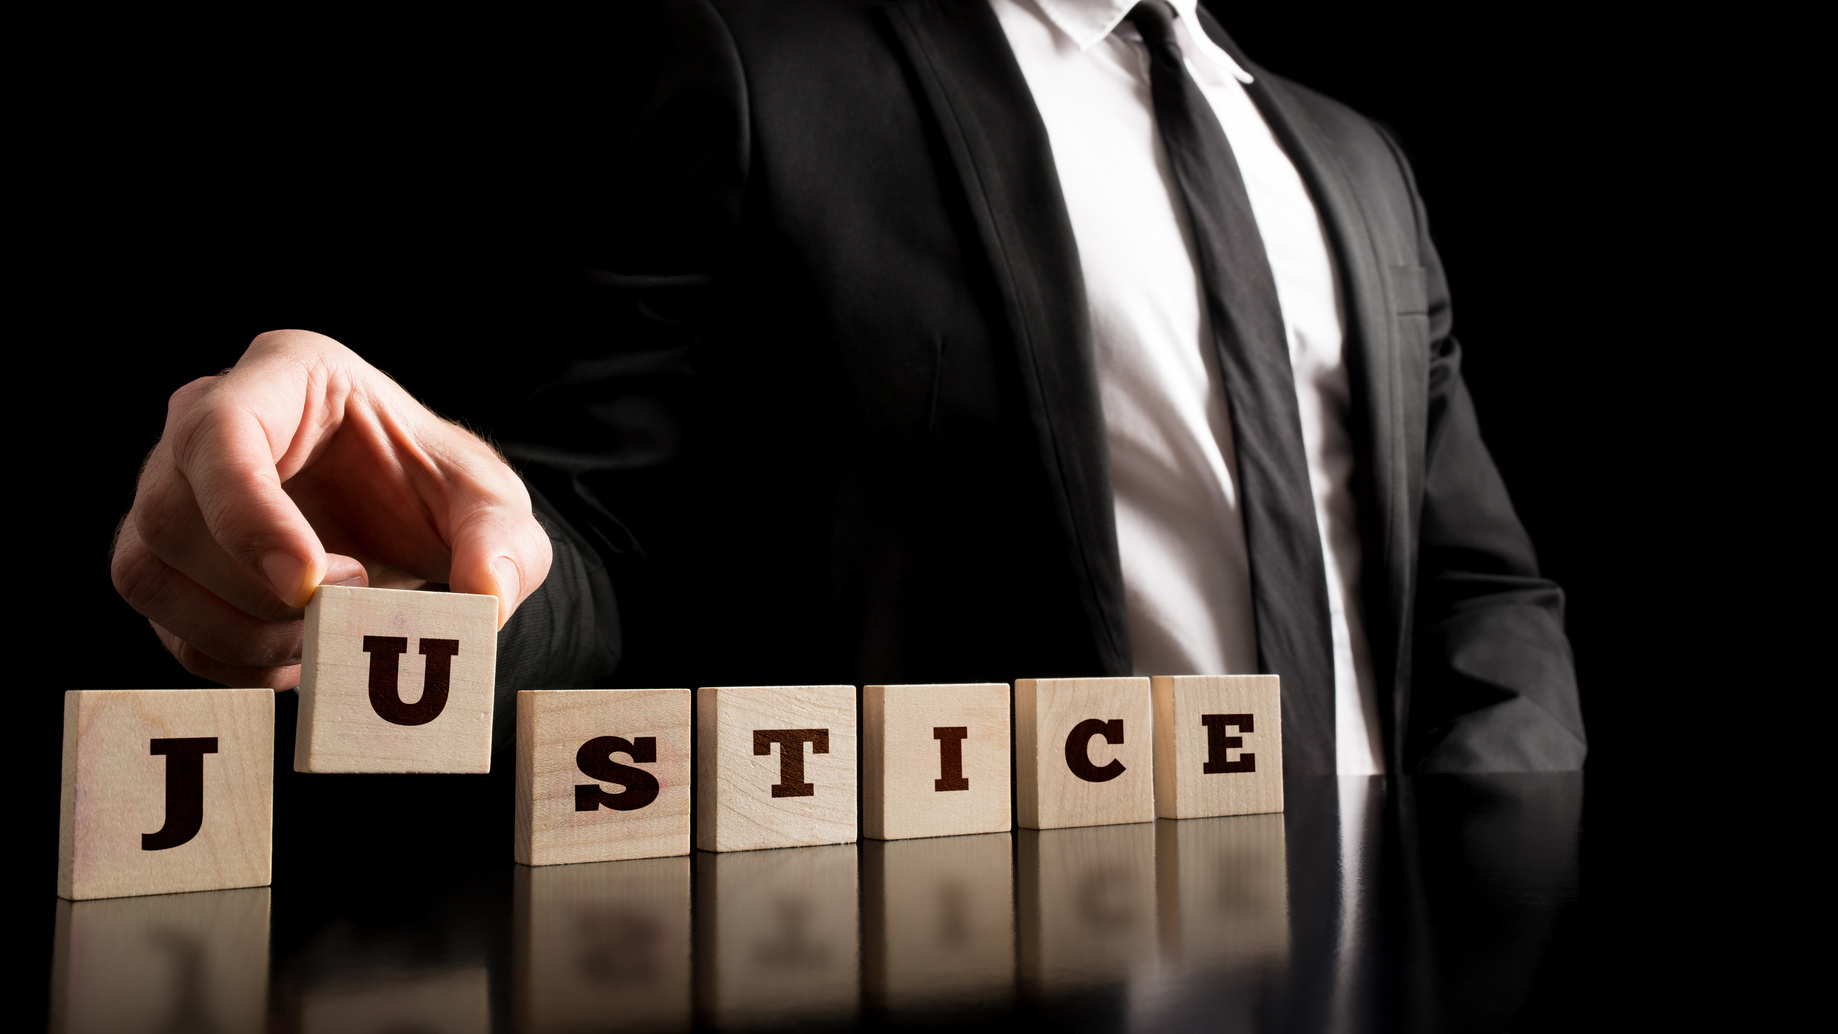 Justice on Wooden Piece